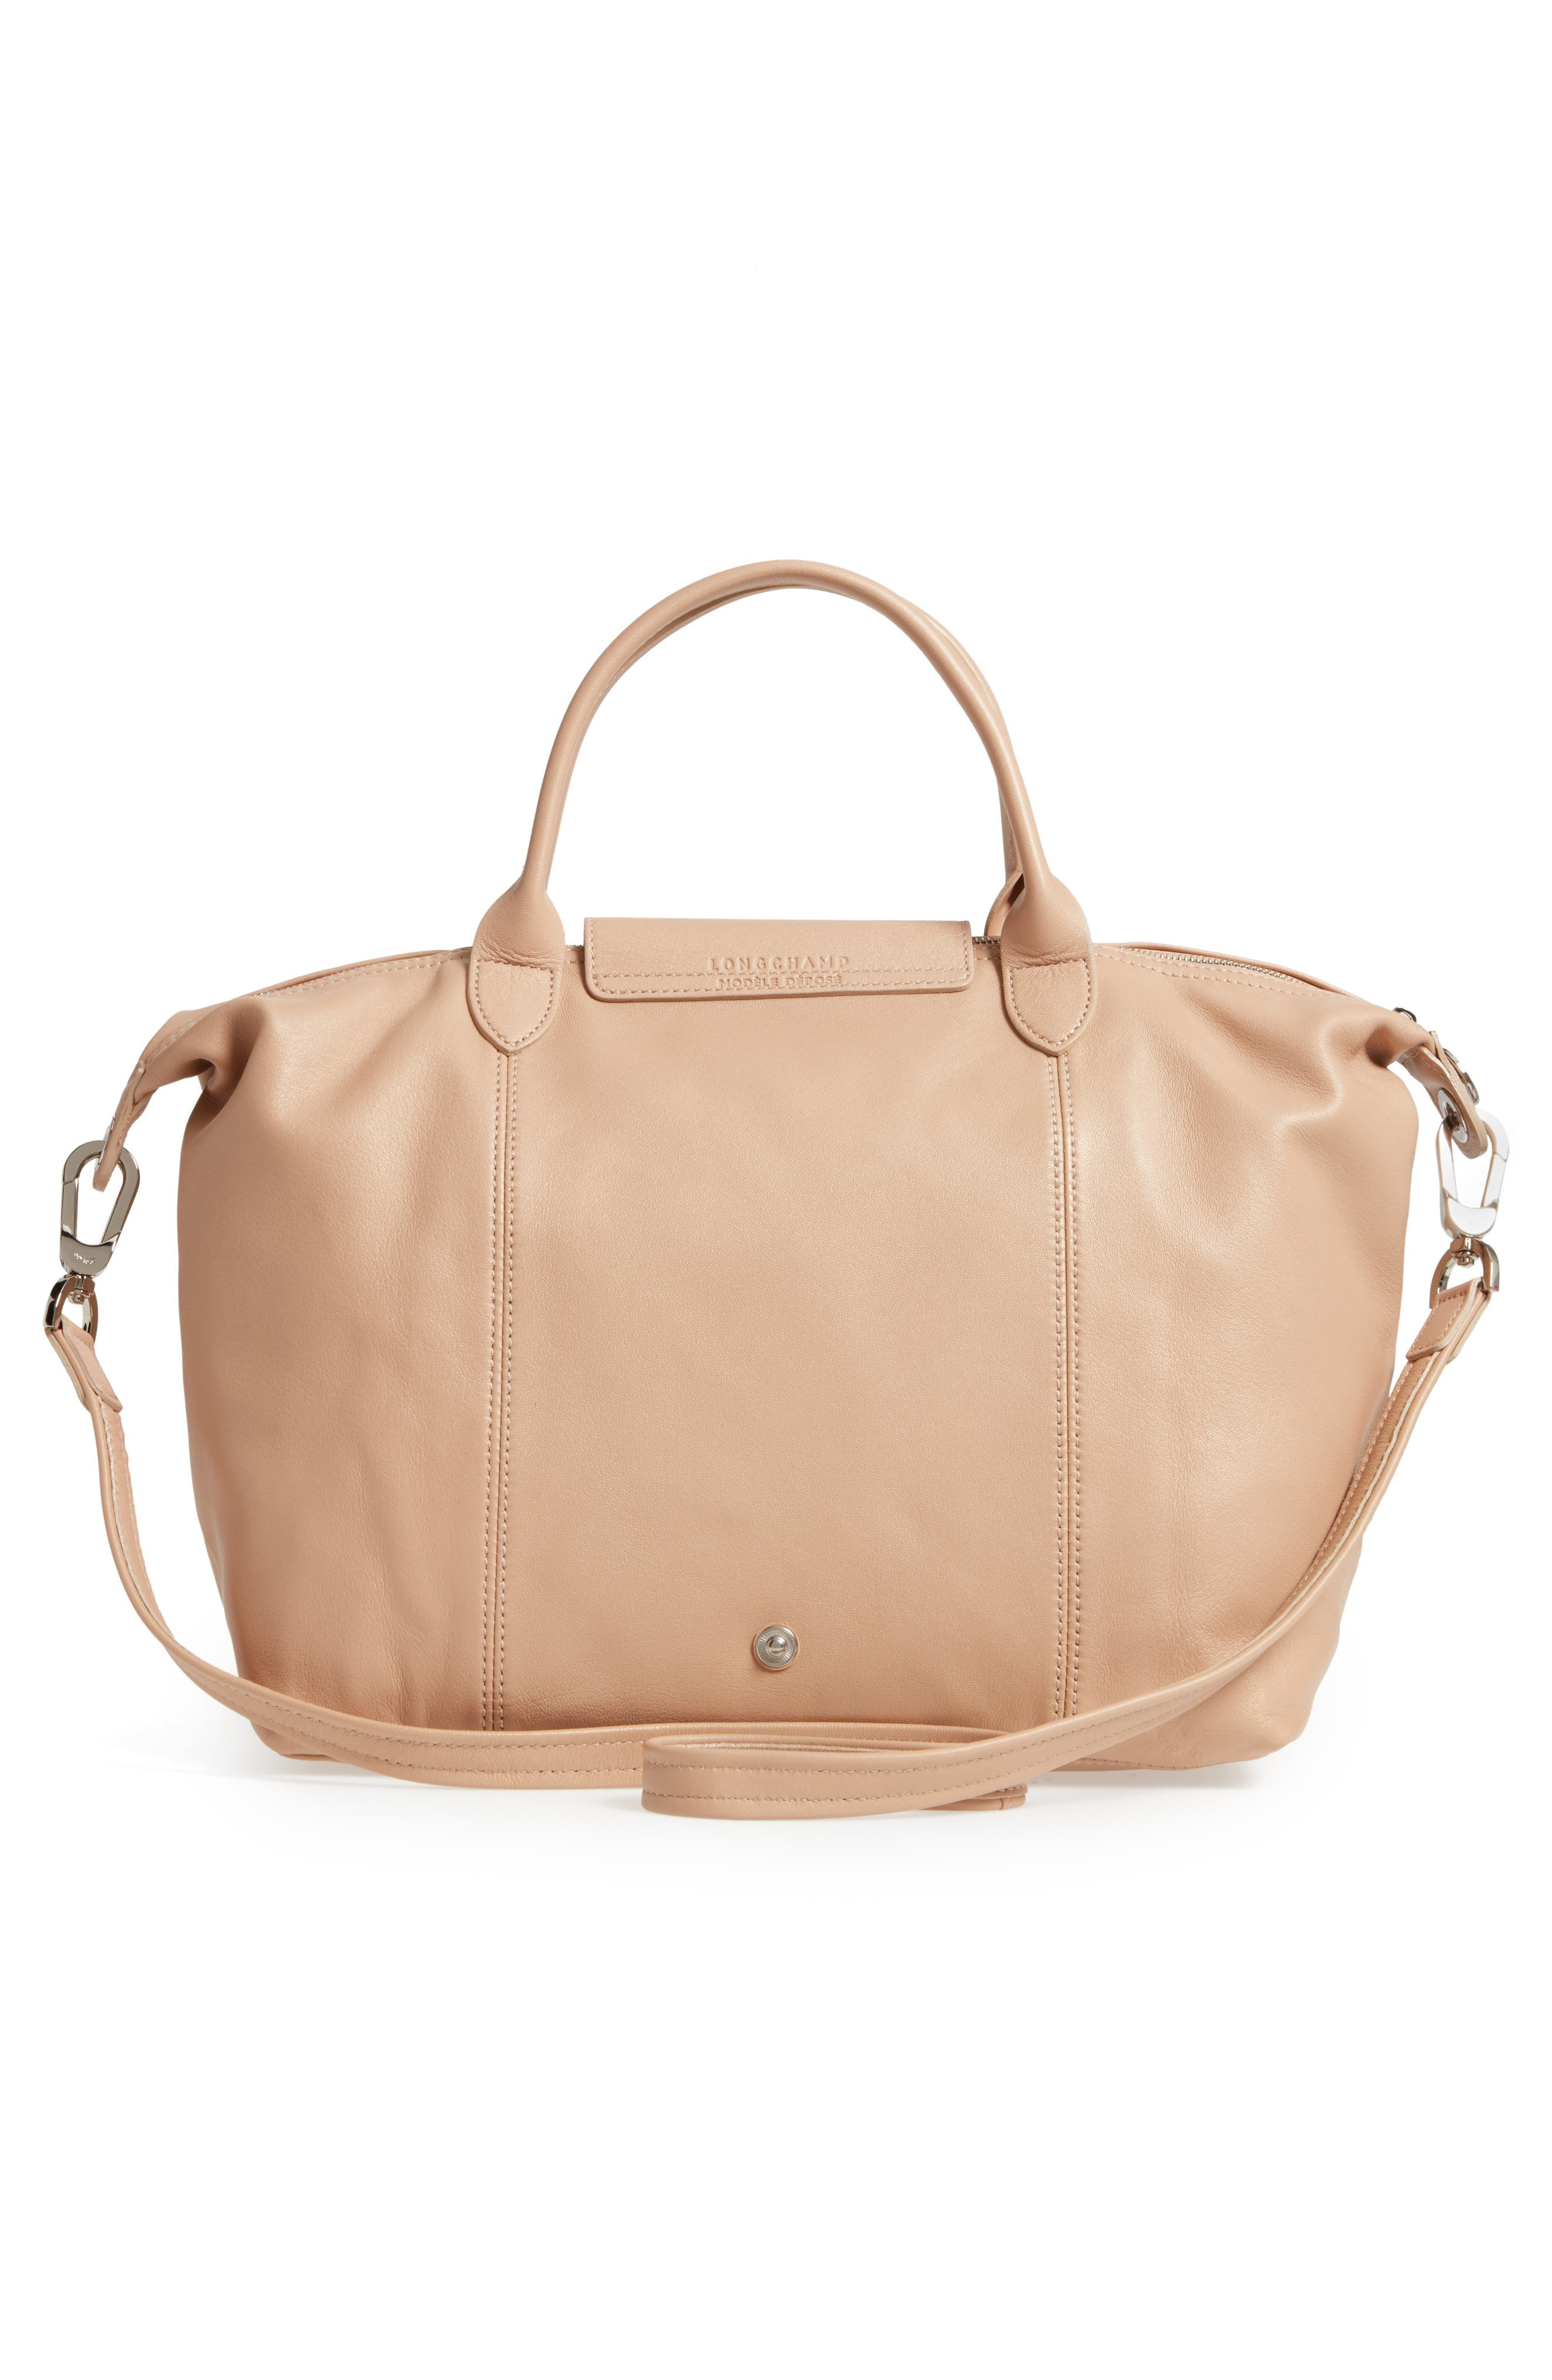 Medium 'Le Pliage Cuir' Leather Top Handle Tote,                             Alternate thumbnail 55, color,